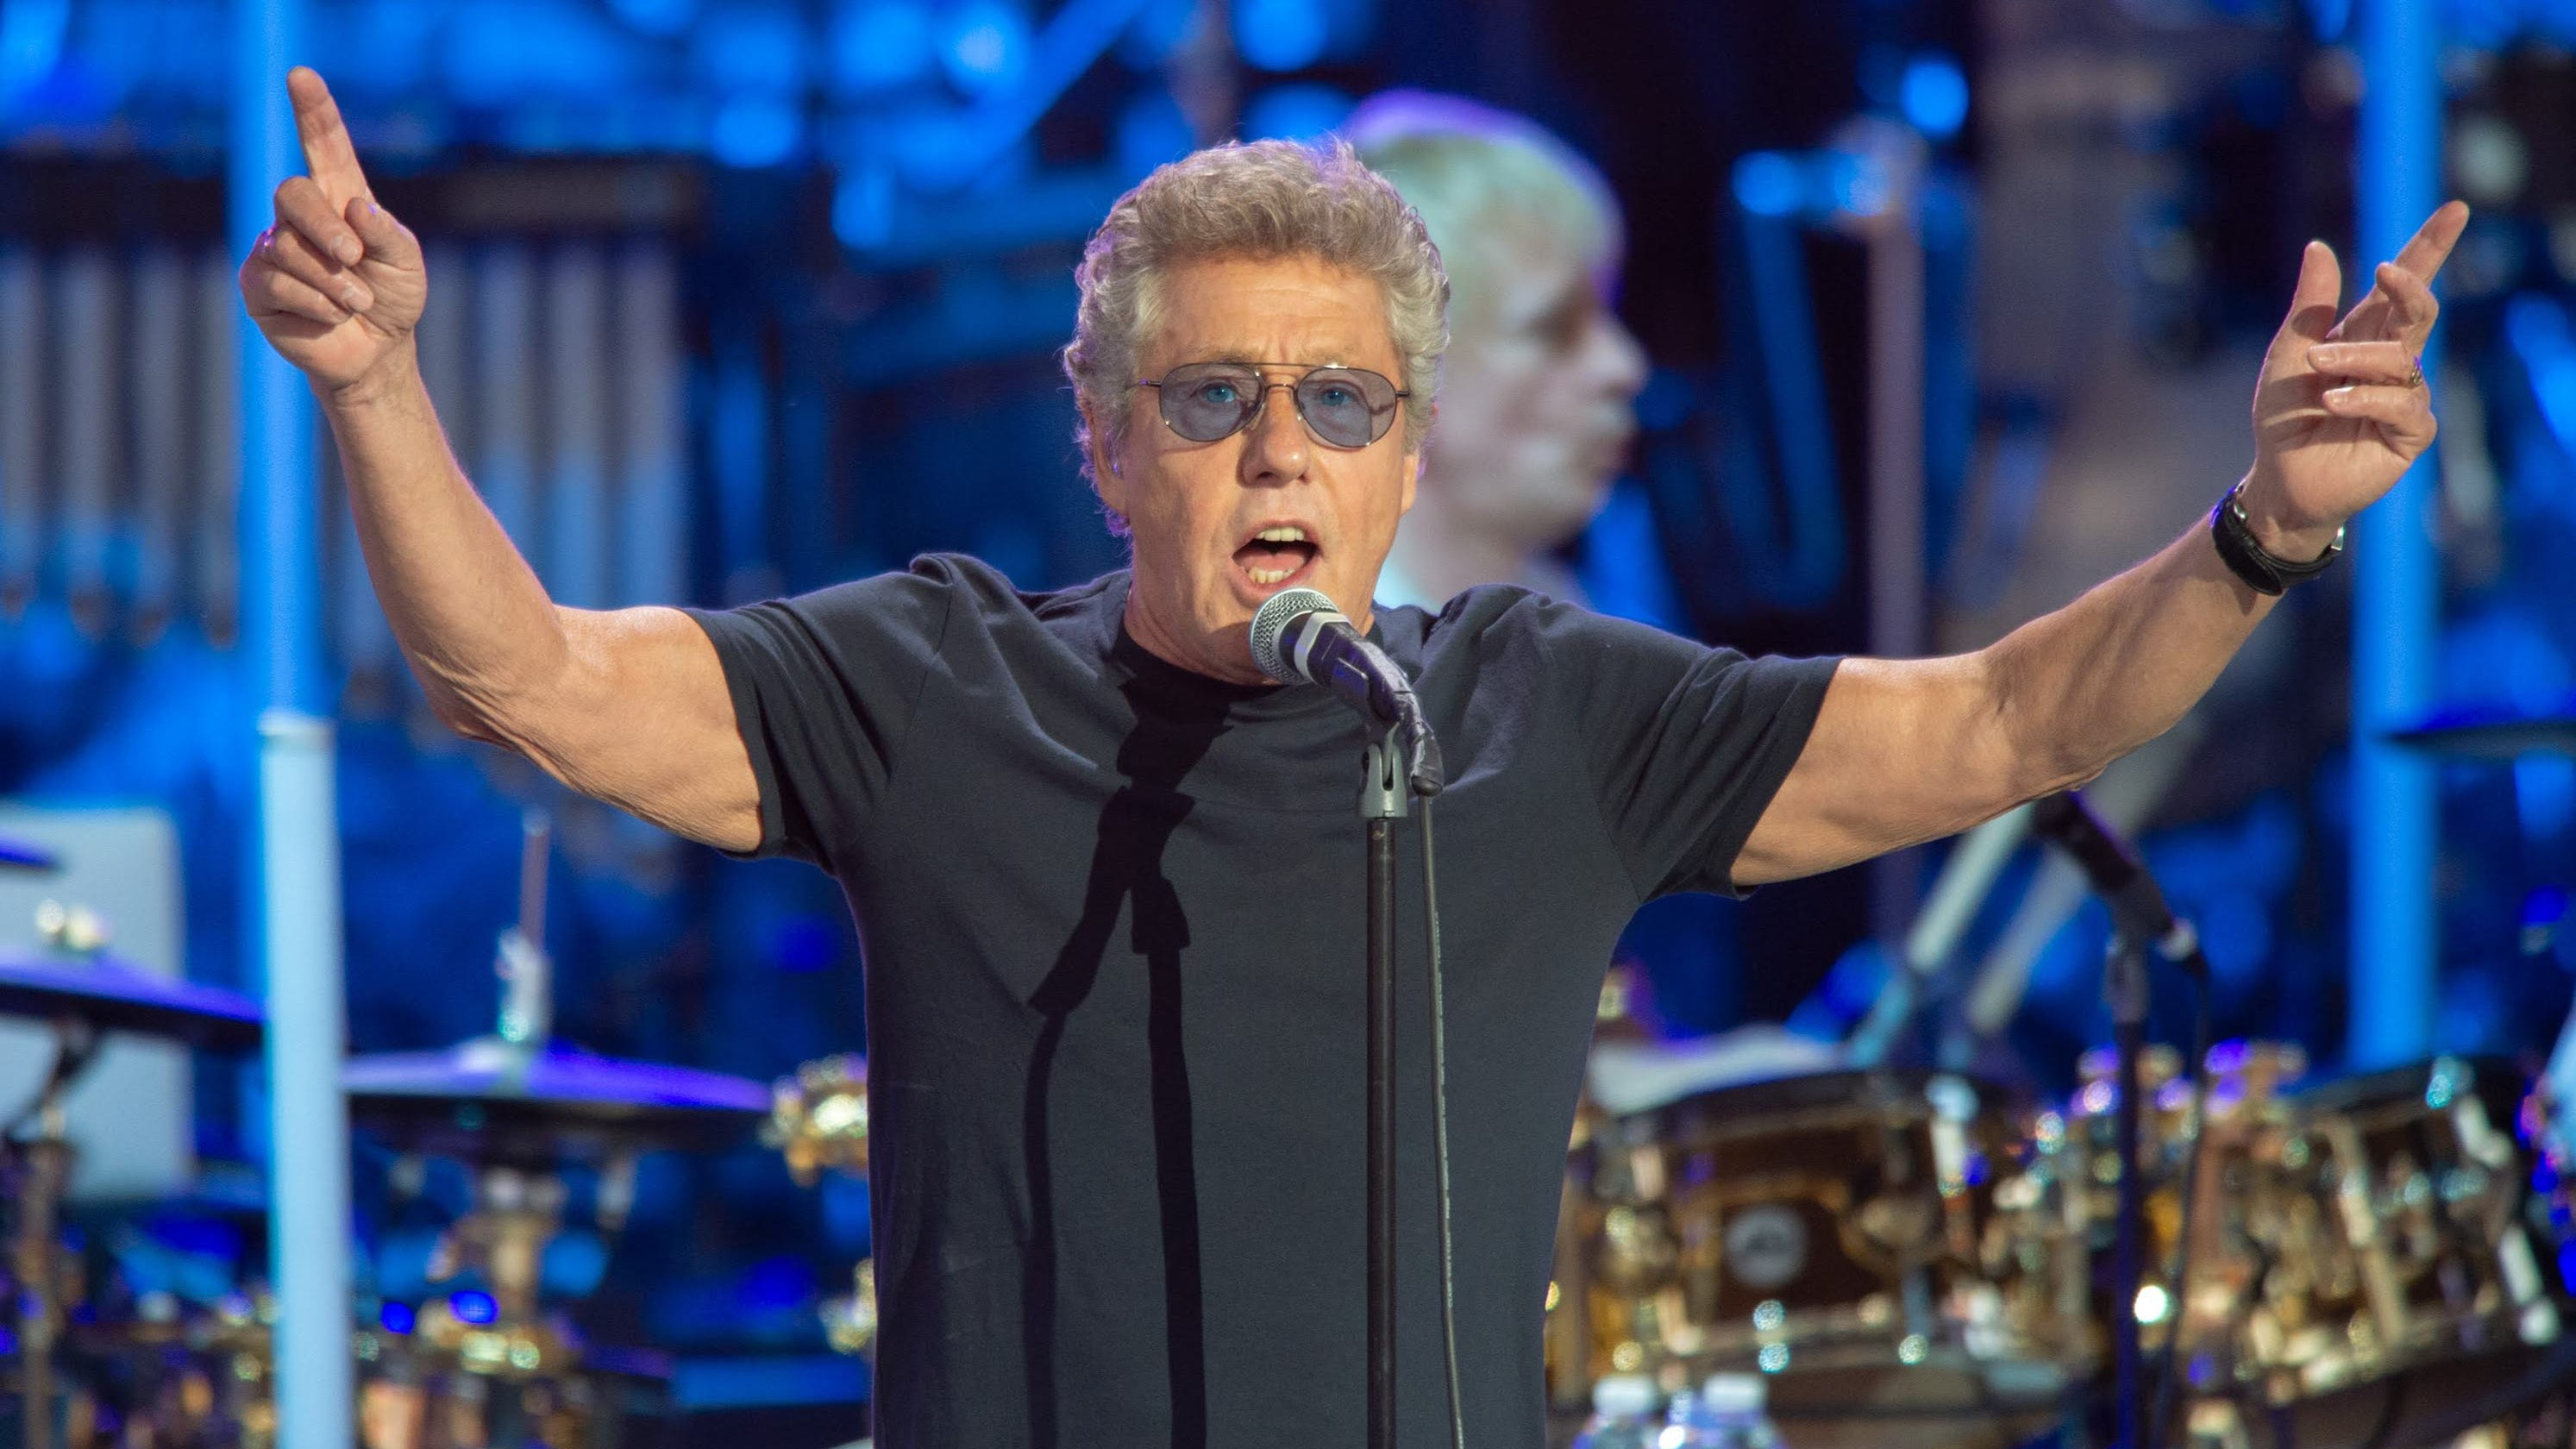 The Who embody music, writ large and small, at Ruoff amphitheater